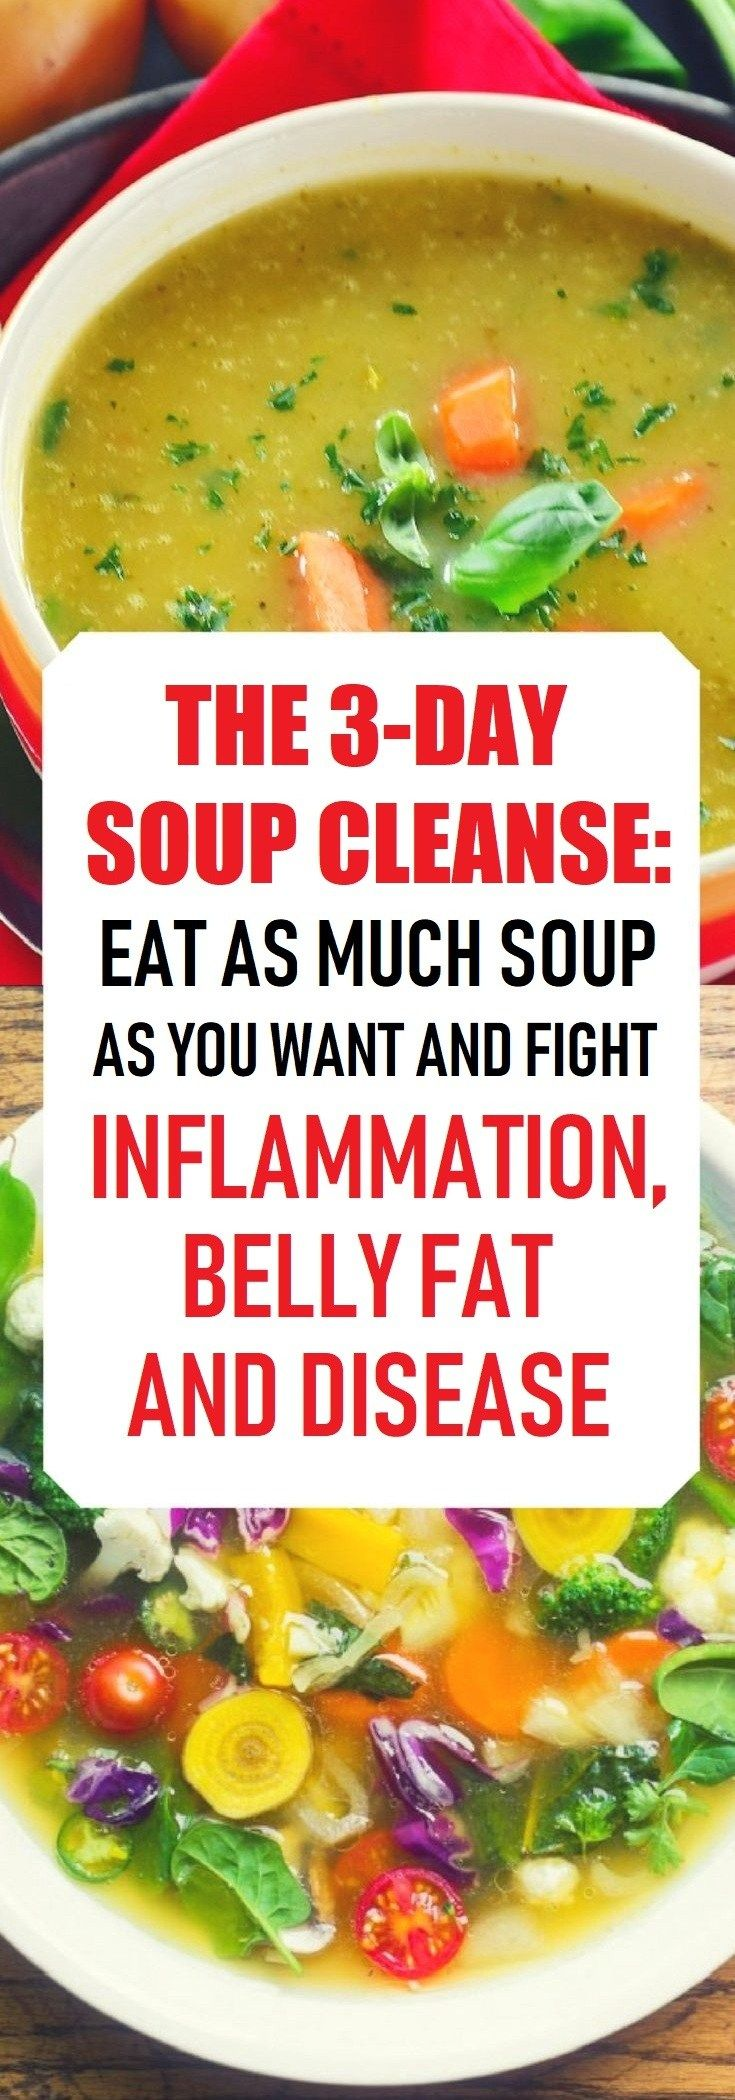 The 3-Day Soup Cleanse: Eat as Much Soup as You Want And Fight Inflammation, Bel…